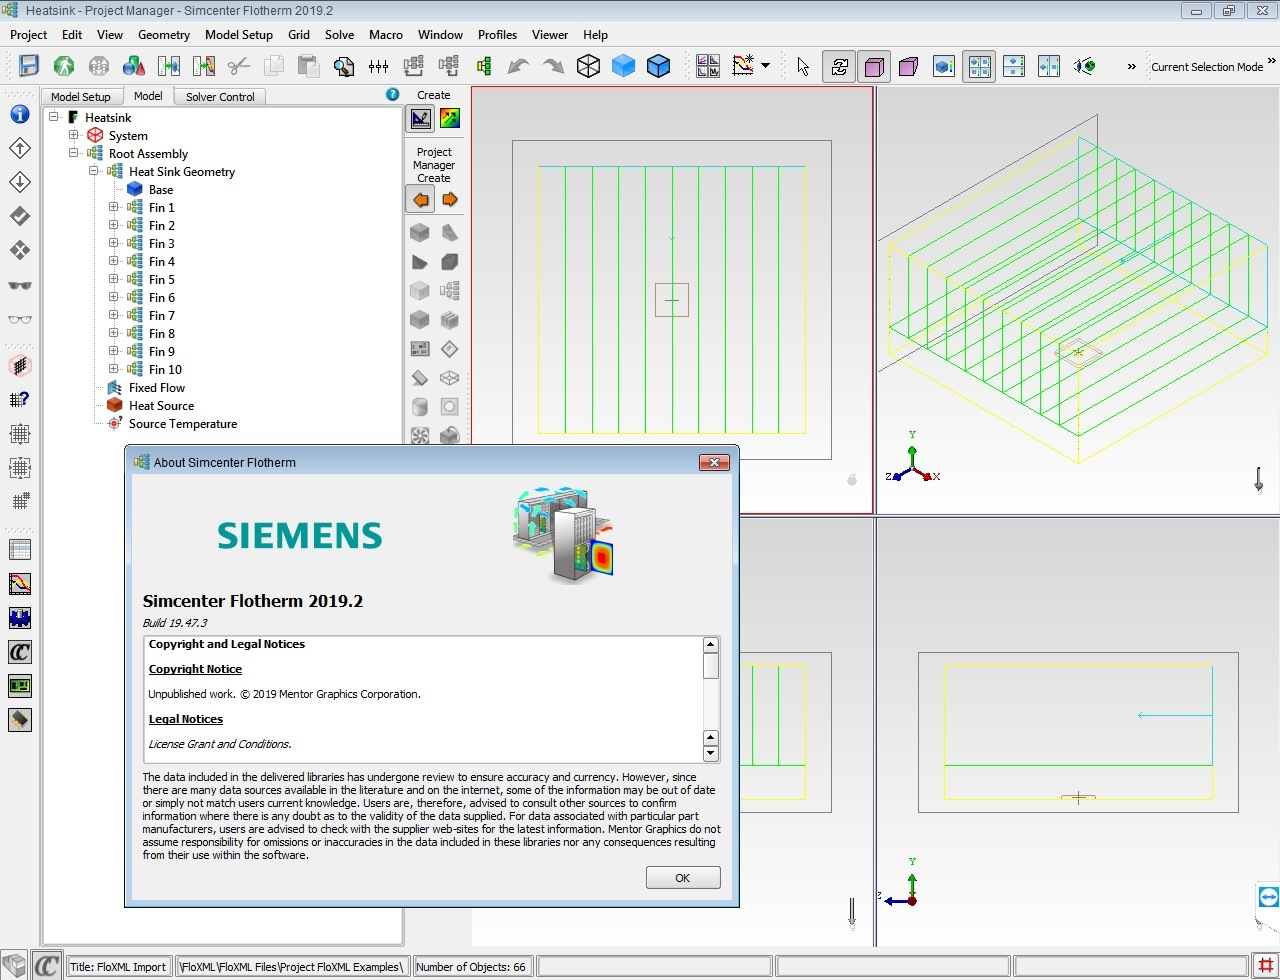 Working with Siemens Simcenter FloTHERM 2019.2 full license